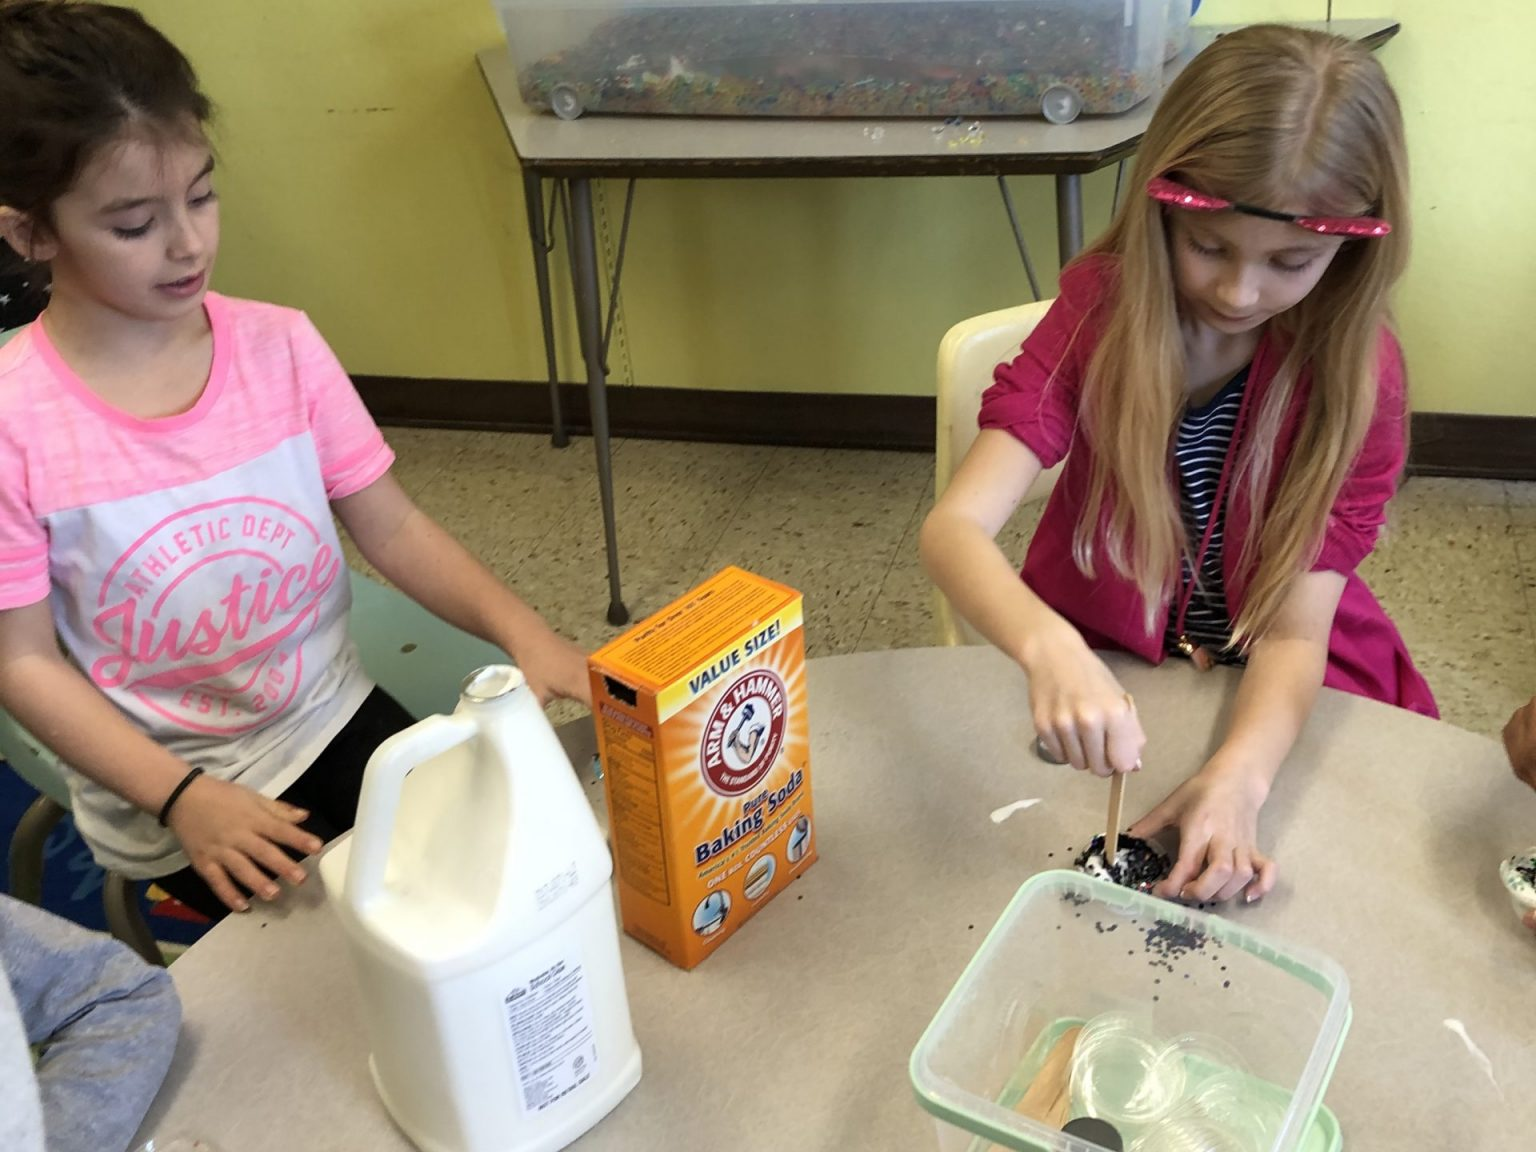 Two girls doing a craft project